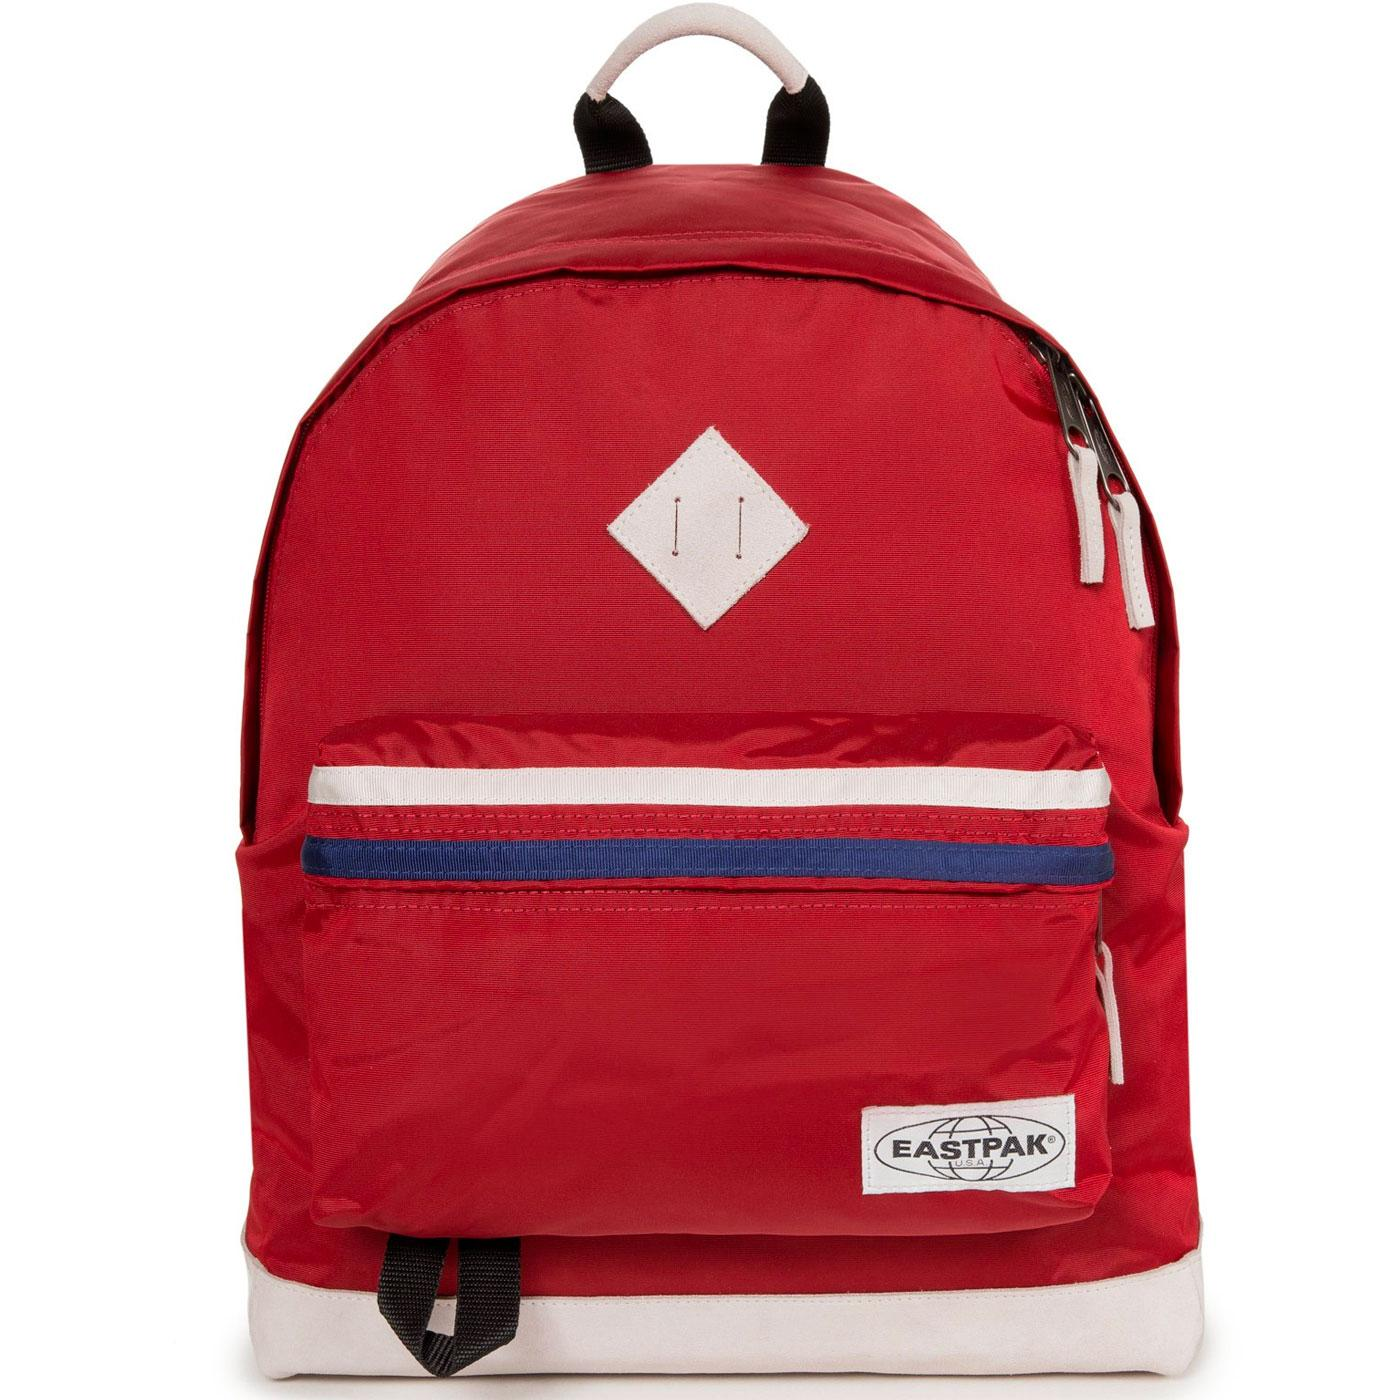 Wyoming EASTPAK Heritage Backpack (Into Retro Red)